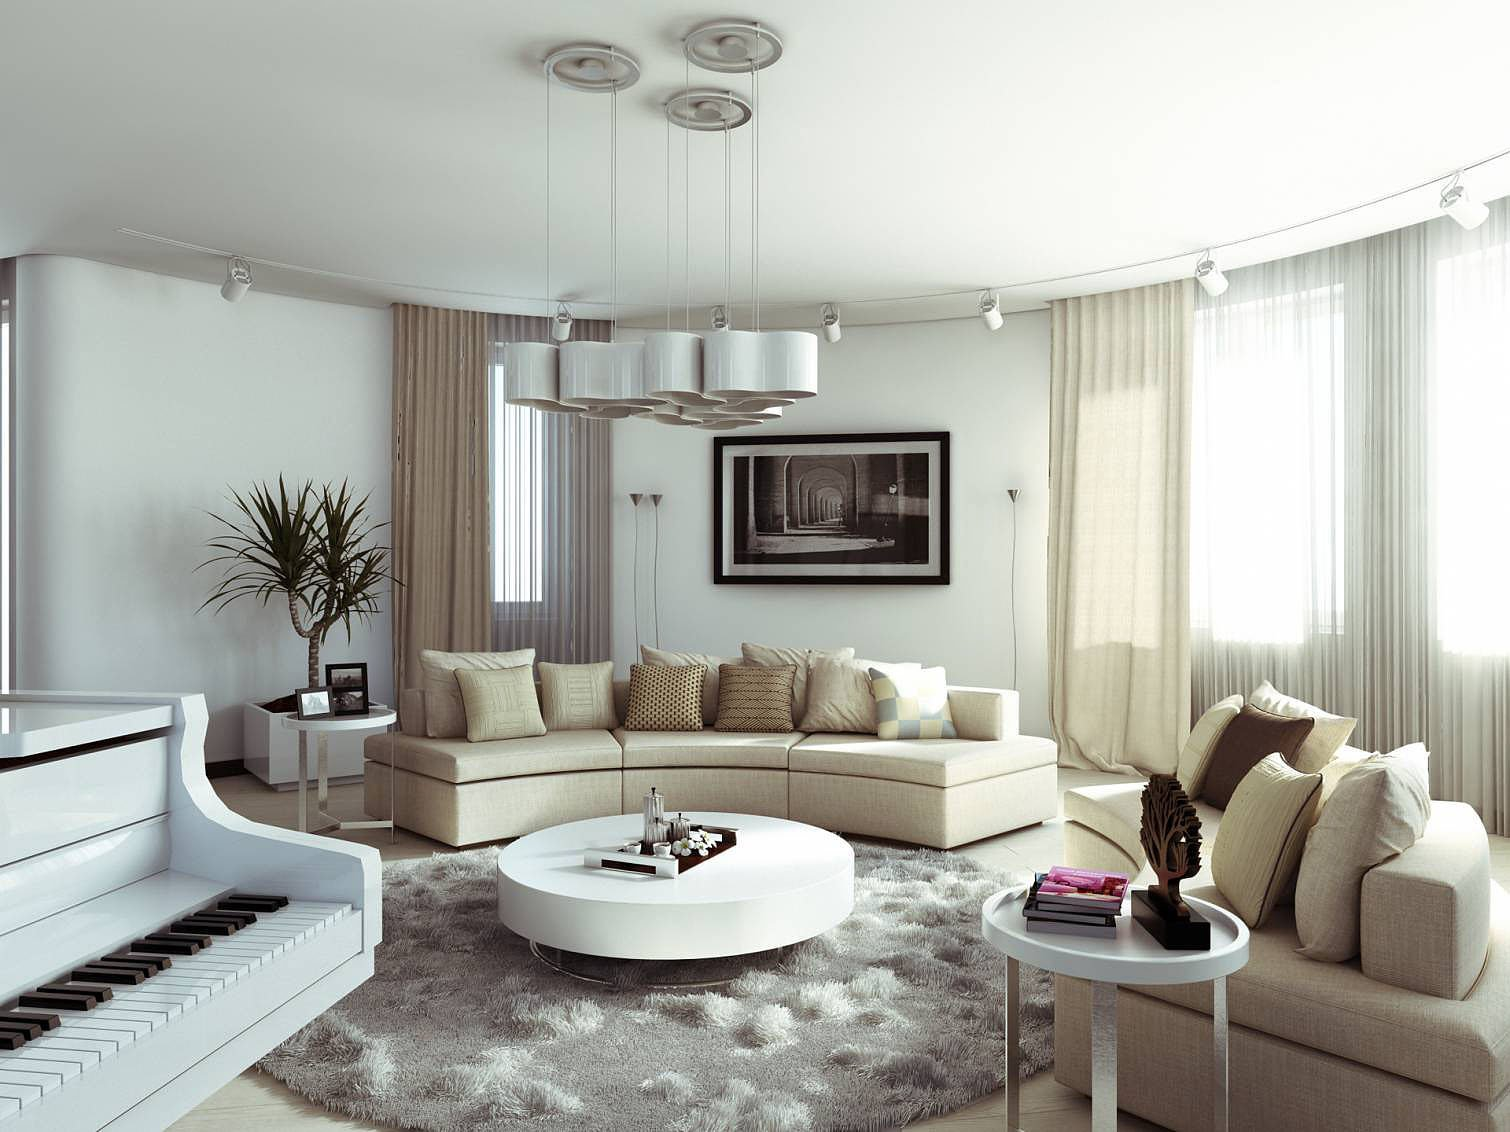 Apartment design in moskovyan plaza by ithaka for House decoration pictures for apartment